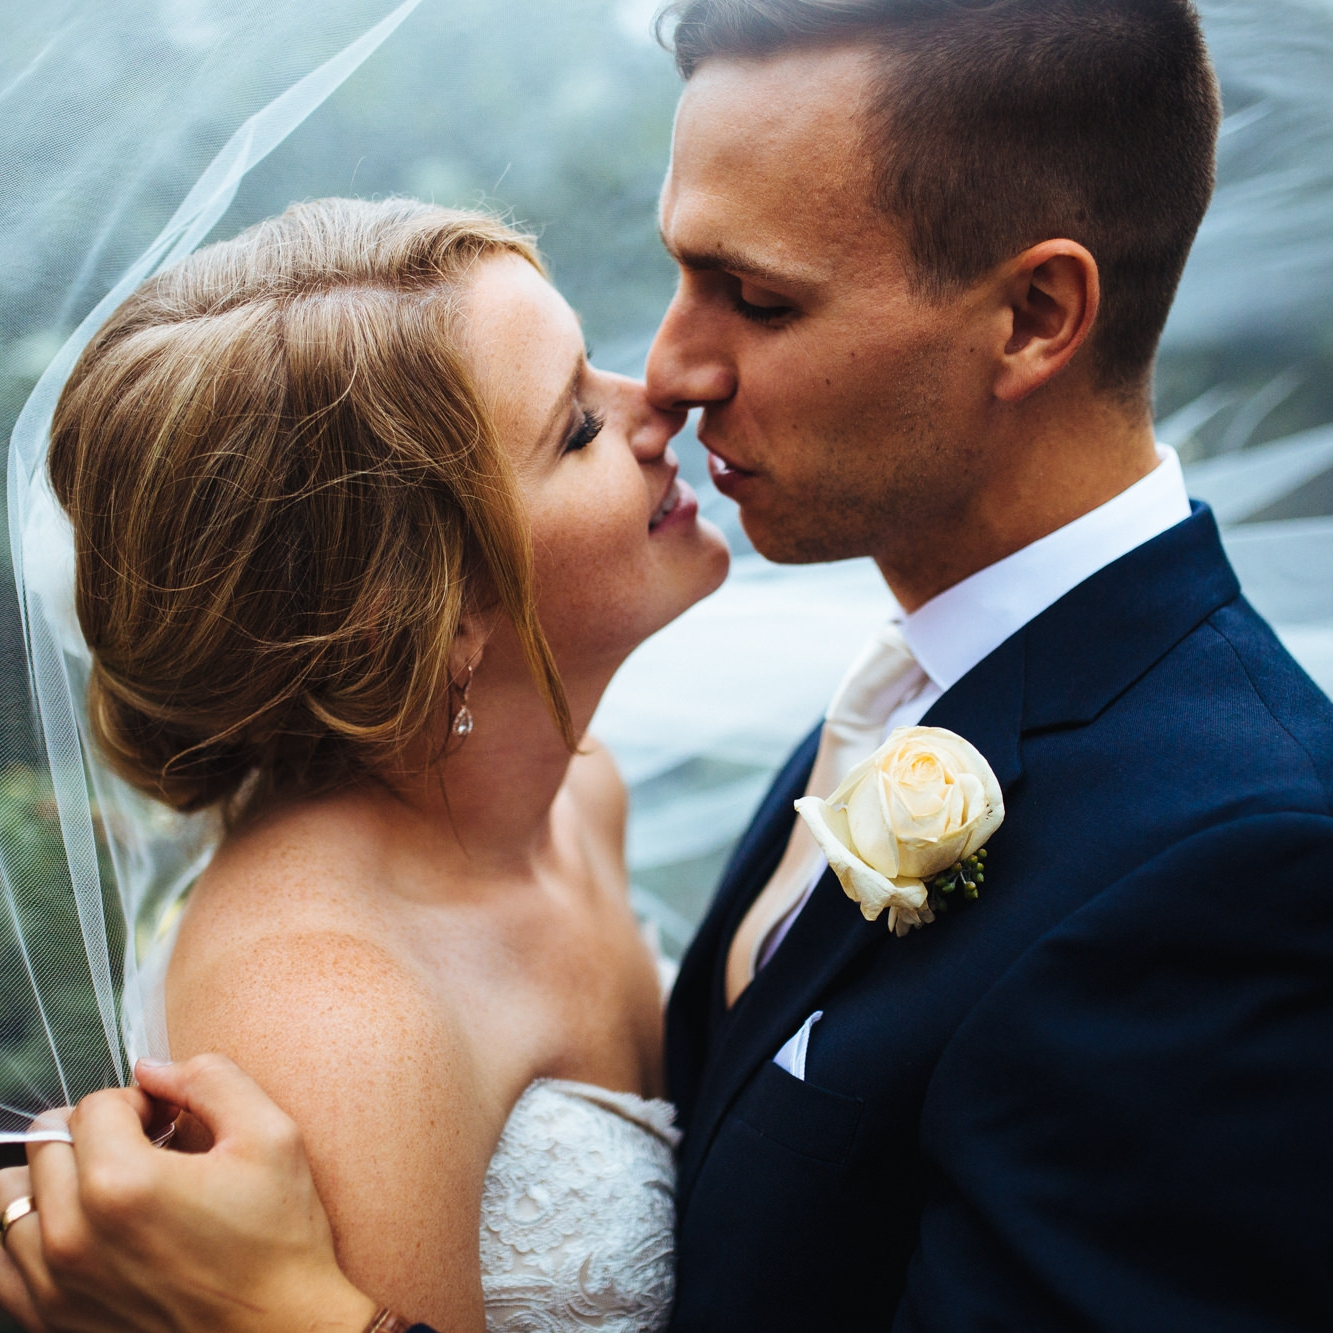 Prime - $7999Unlimited Coverage2 Photographers2 VideographersEngagement SessionFull Print ReleaseOnline Photo Gallery5-7 Minute Wedding Day FilmCeremony, Speeches & DanceOnline Video Gallery